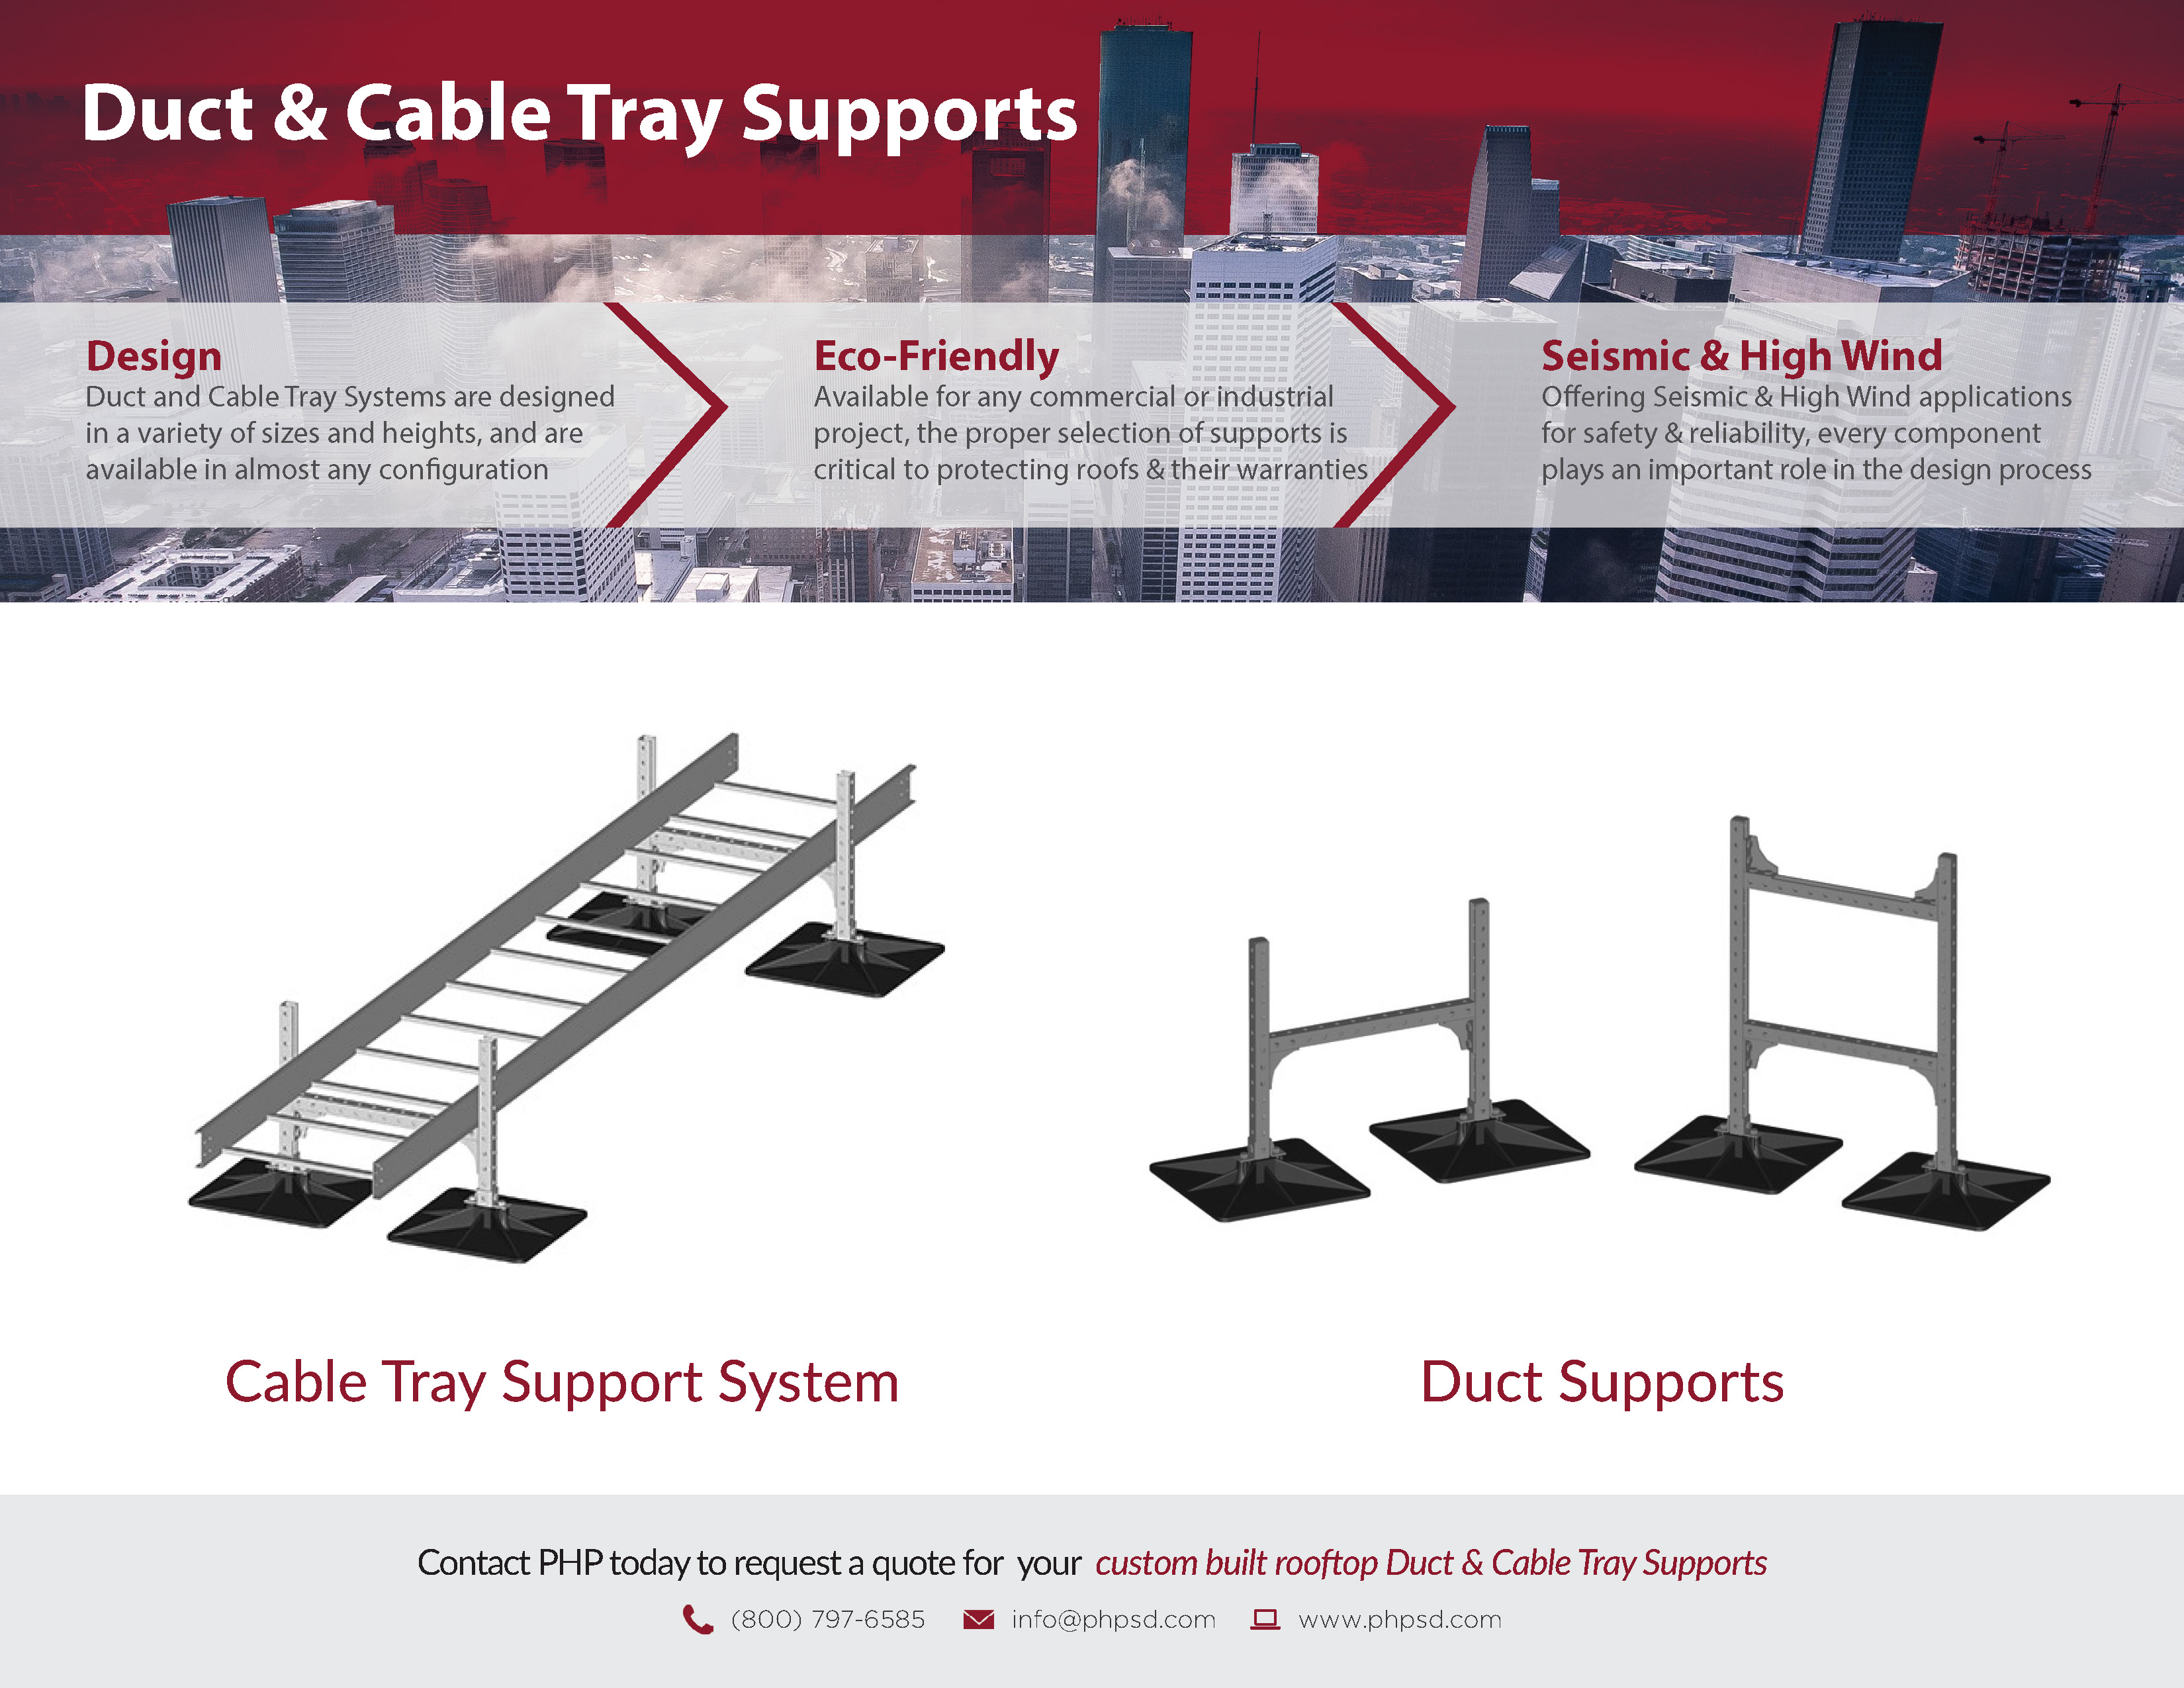 PHP Duct & Cable Tray Support Product Flyer